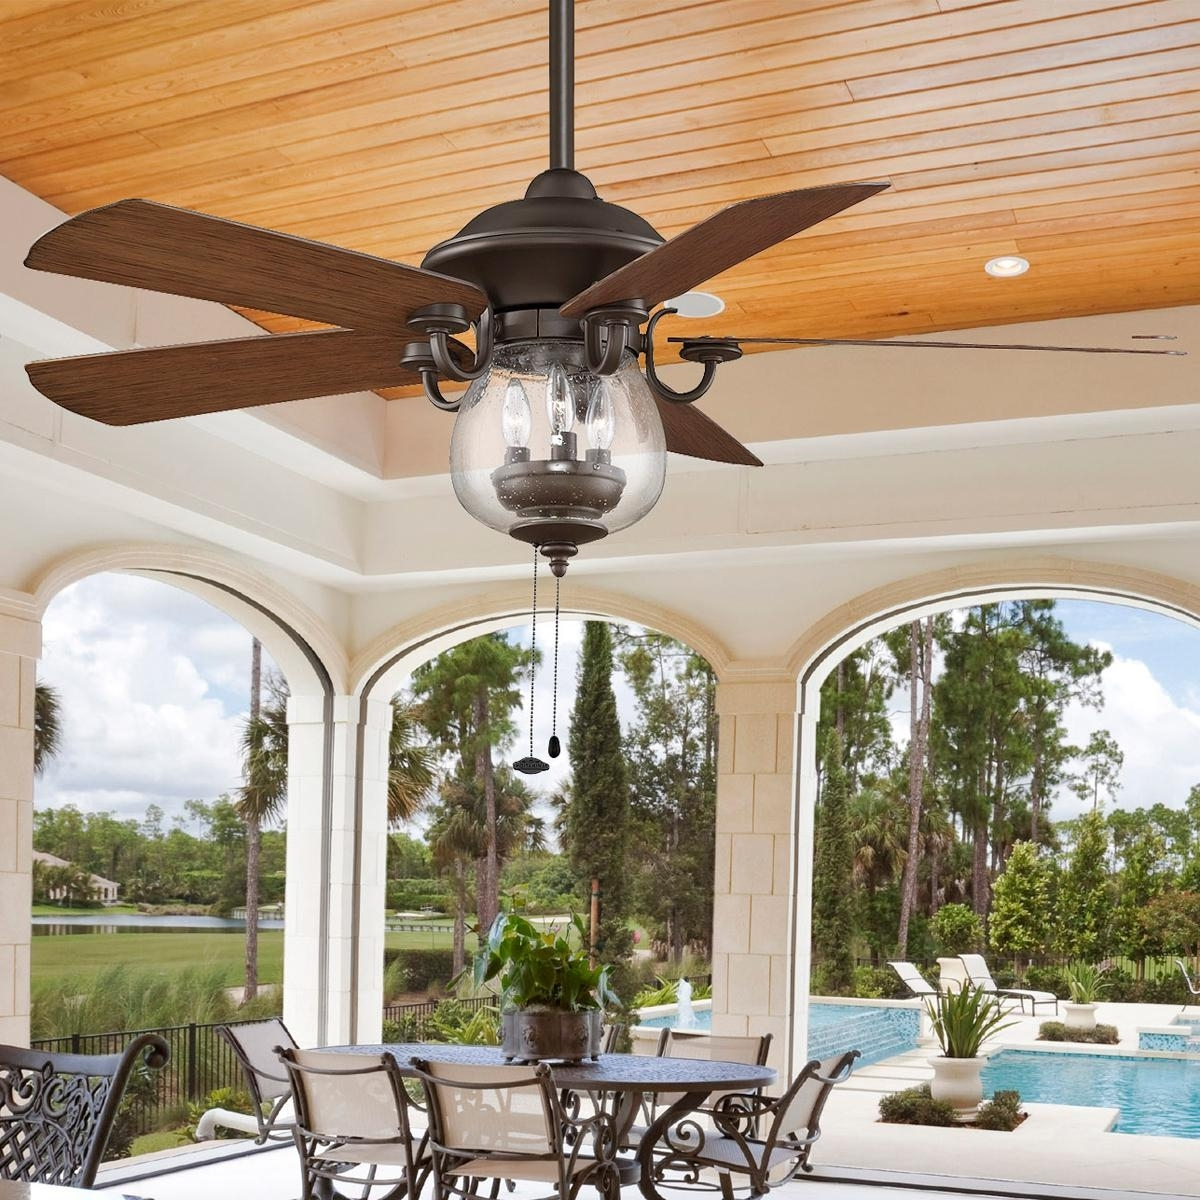 Famous Ceiling Fans Outdoor – Pixball Intended For Outdoor Patio Ceiling Fans With Lights (View 17 of 20)